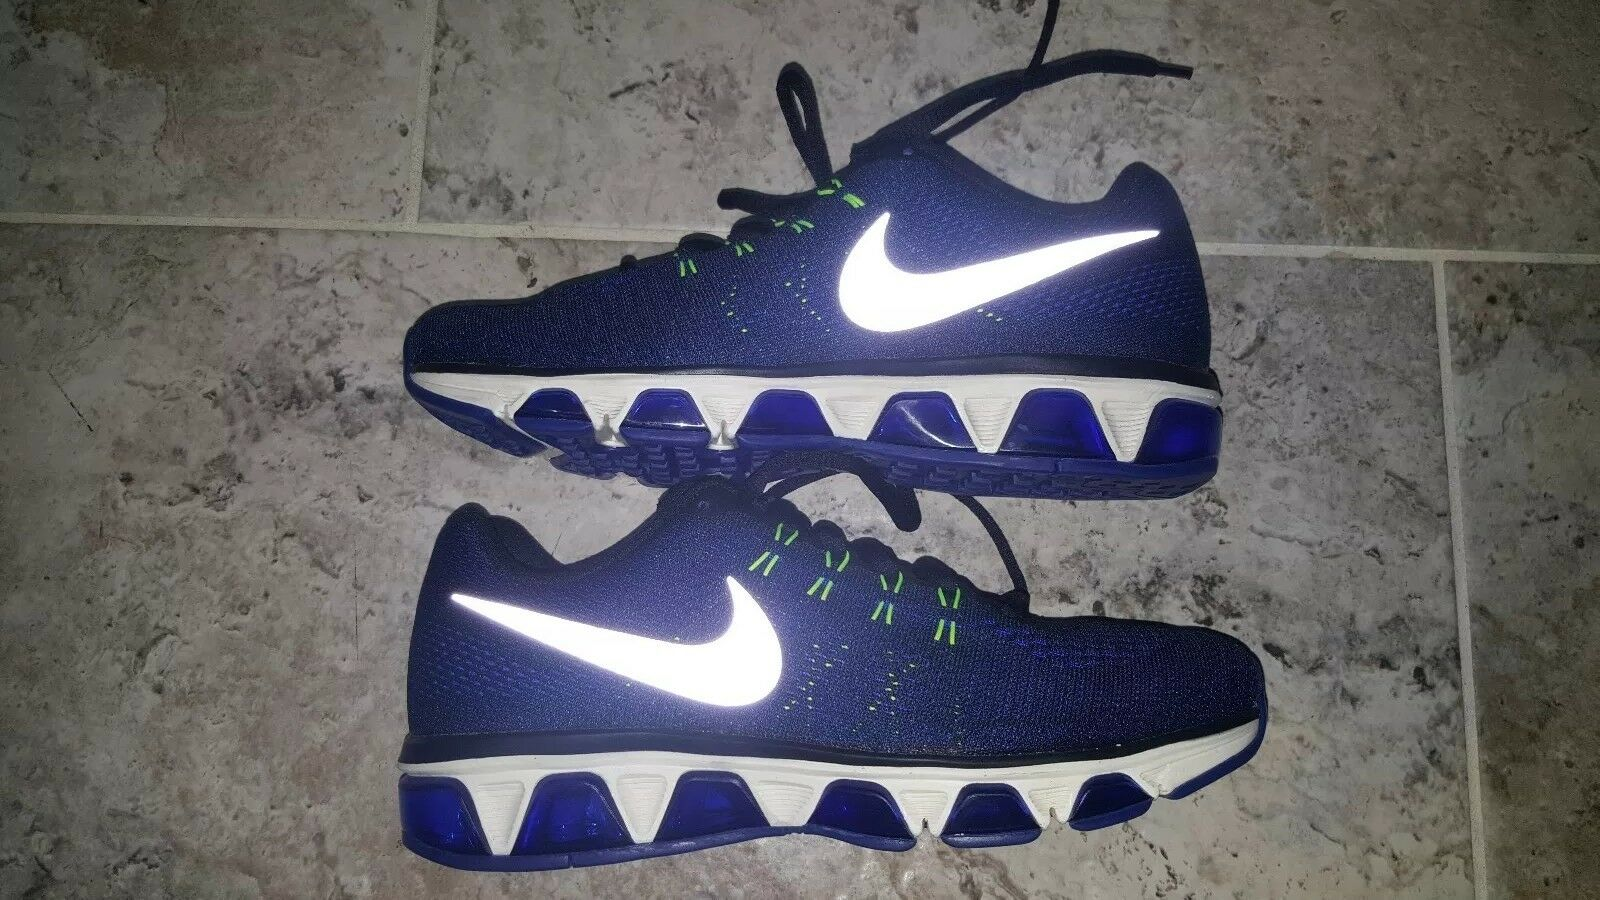 NEW WITHOUT BOX NIKE TAILWIND 8 MEN'S SIZE US7.5 ONLY ONE ON EBAY IN THIS SIZE